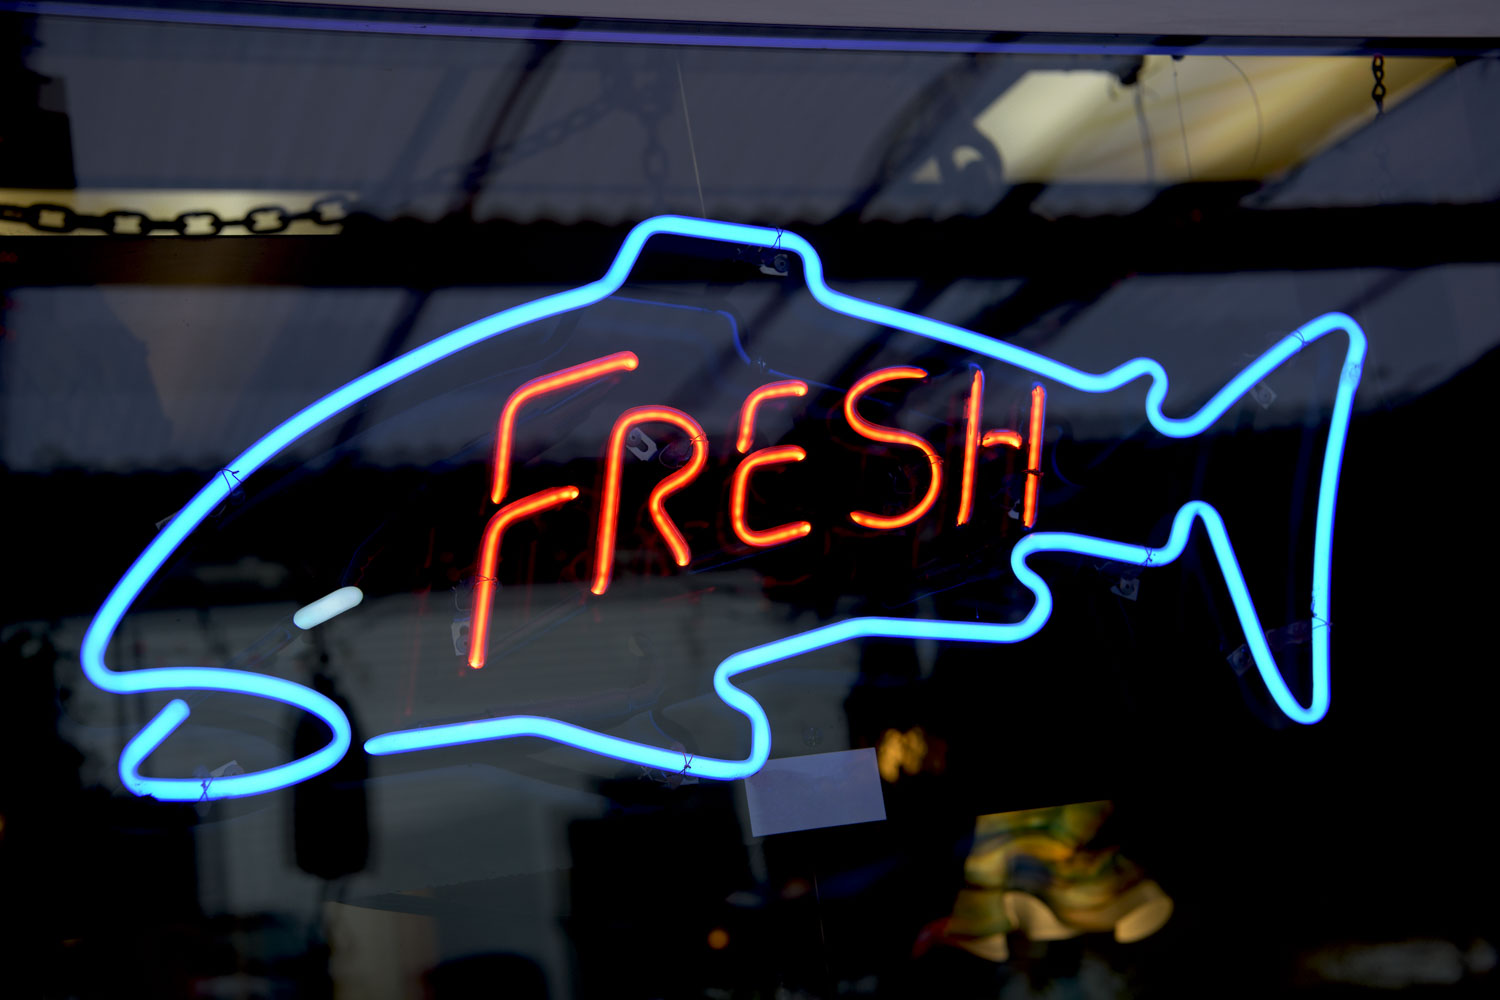 Neon fishmonger sign